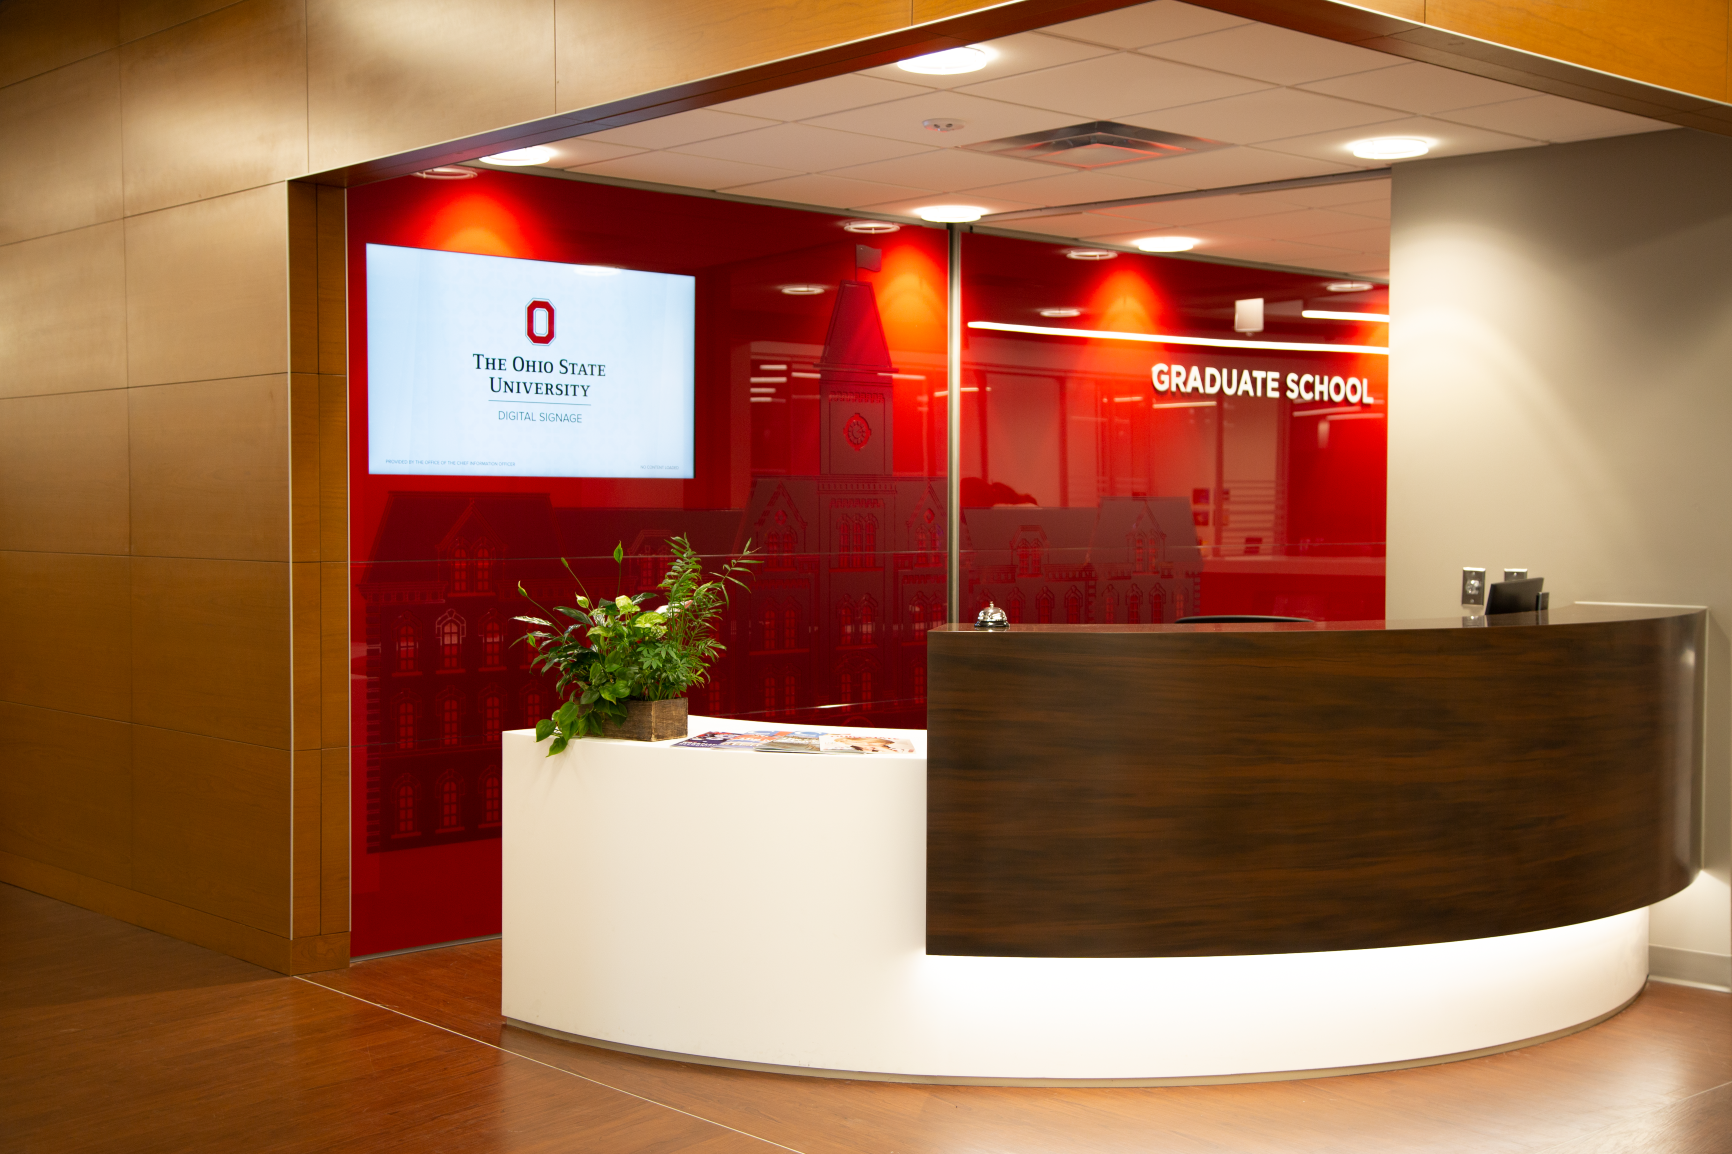 Custom DIRTT applications with integrated technology and custom branding greets guests at the Graduate School in University Hall at The Ohio State University by Continental Office